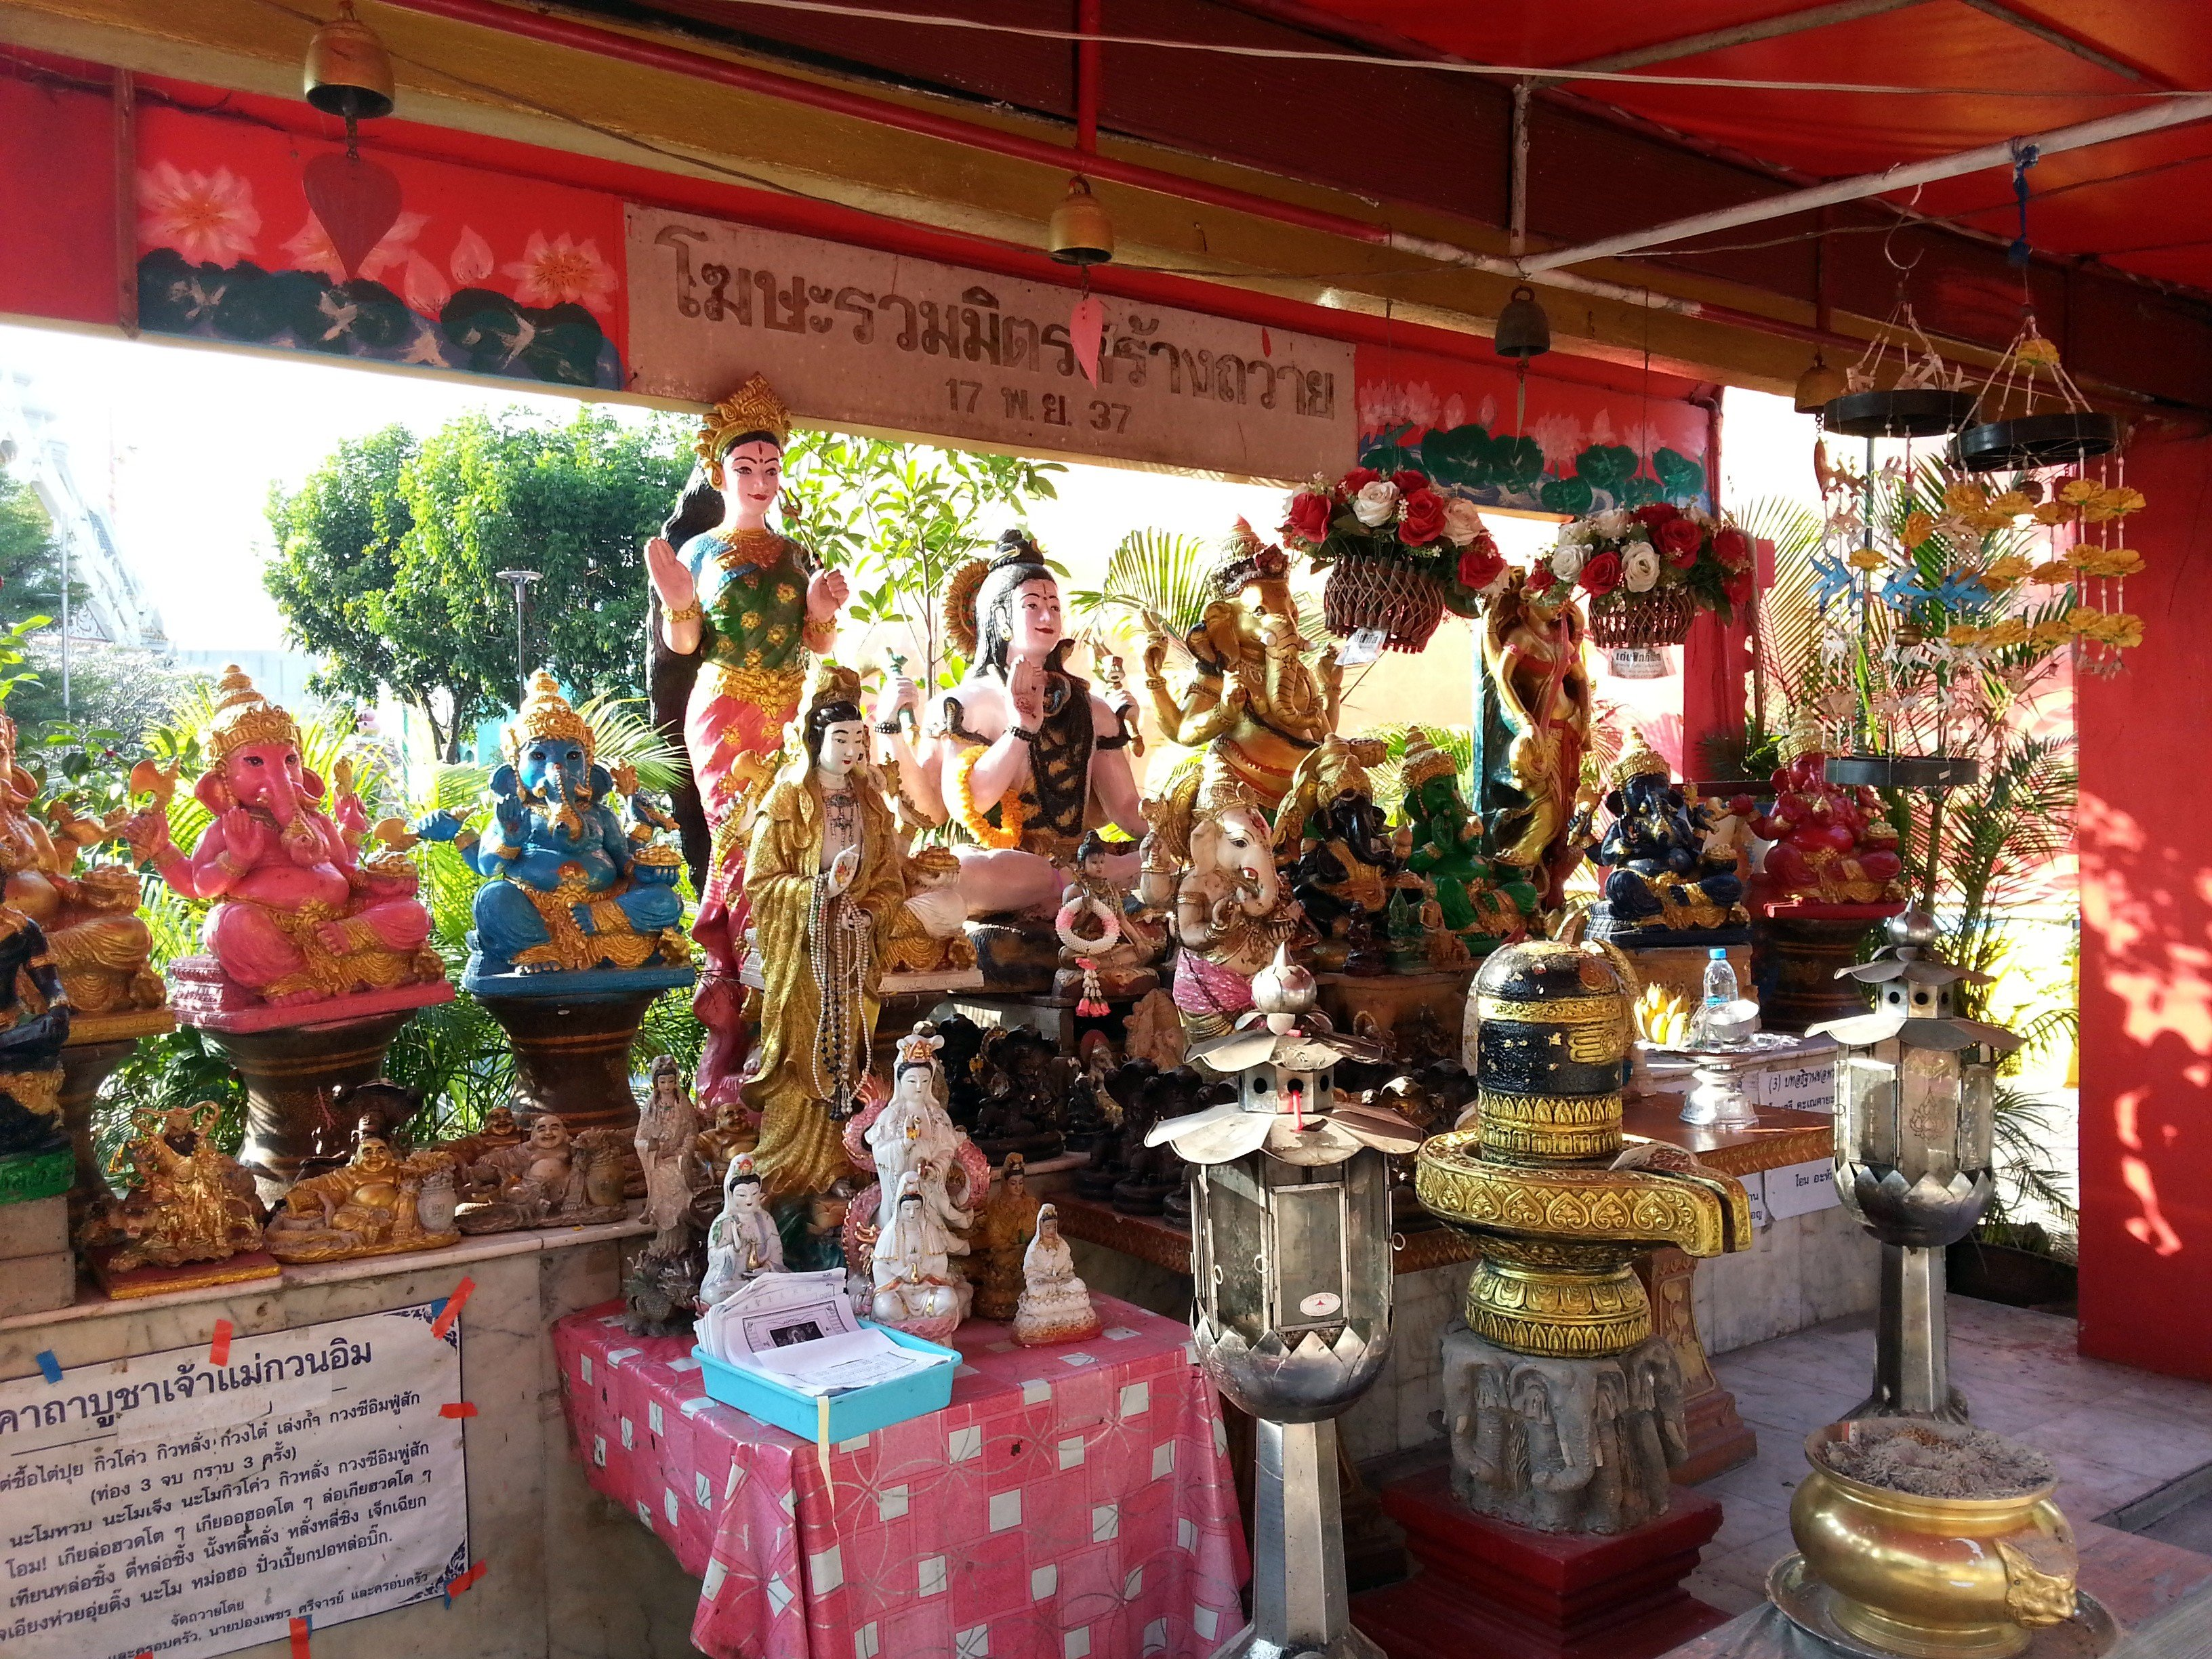 Statues of Hindu deities near the Thewasathan Phra Mae Thoranee Shrine